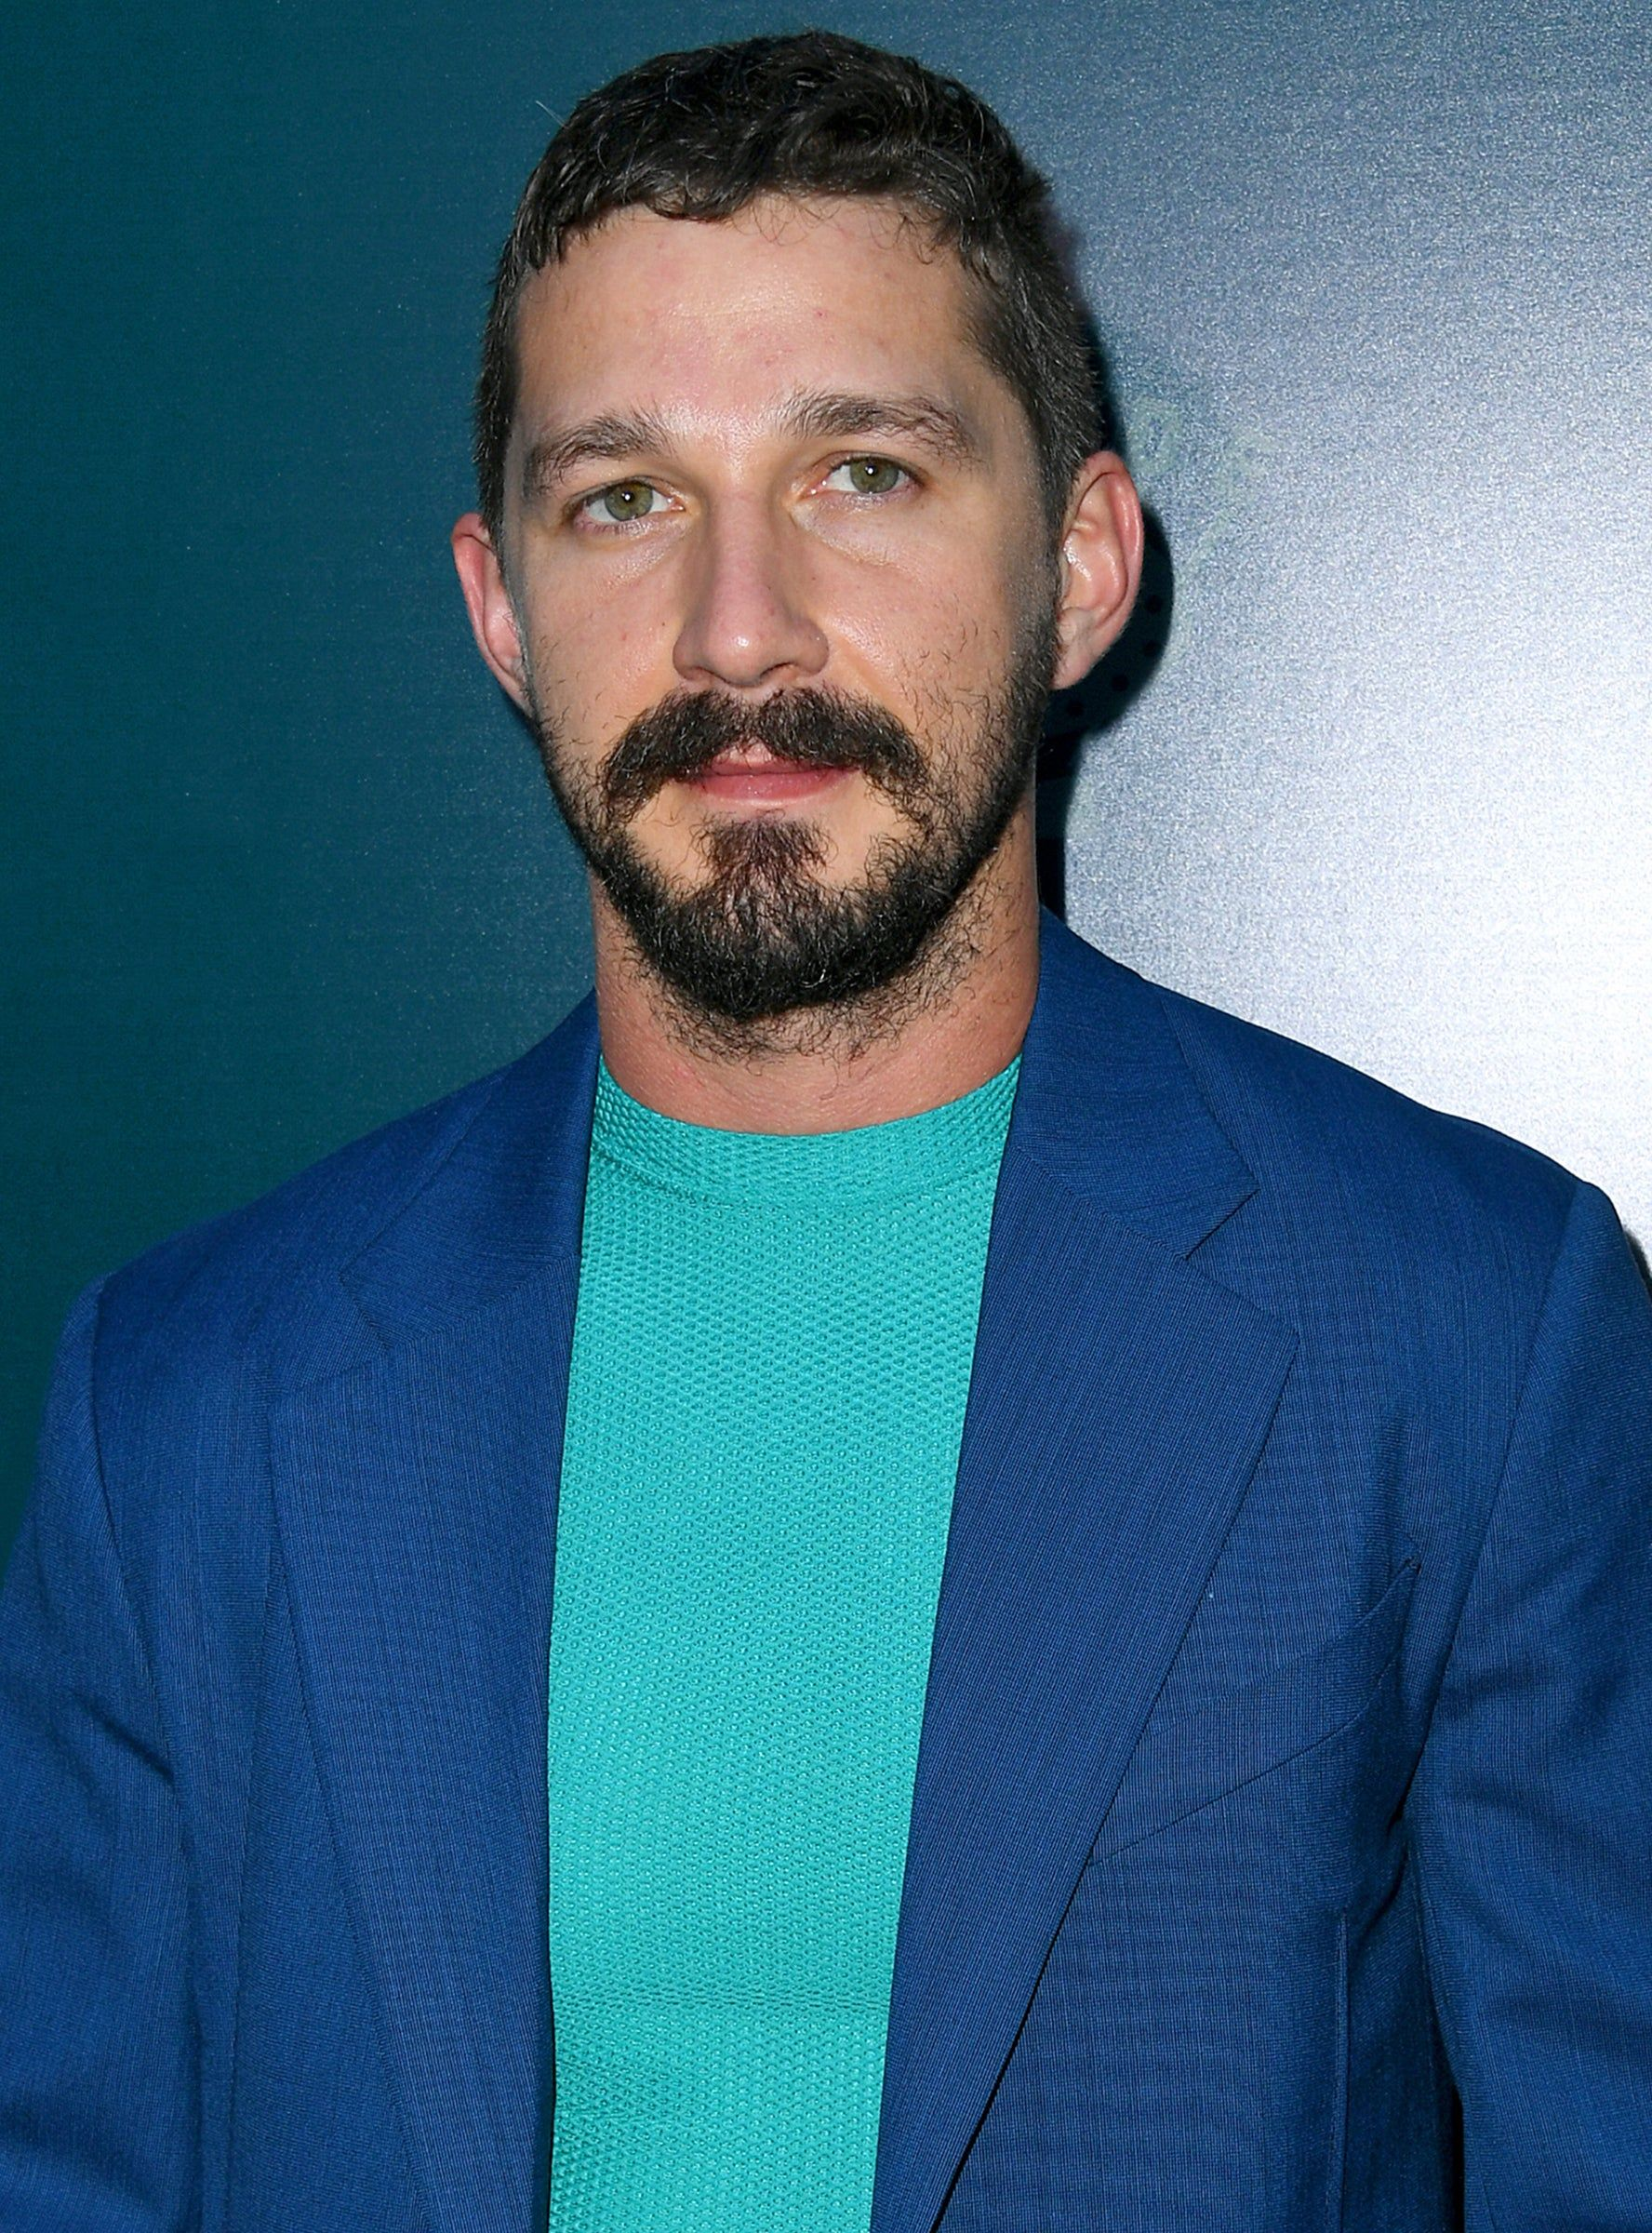 A Brief History Of Shia LaBeouf Falling For His Costars